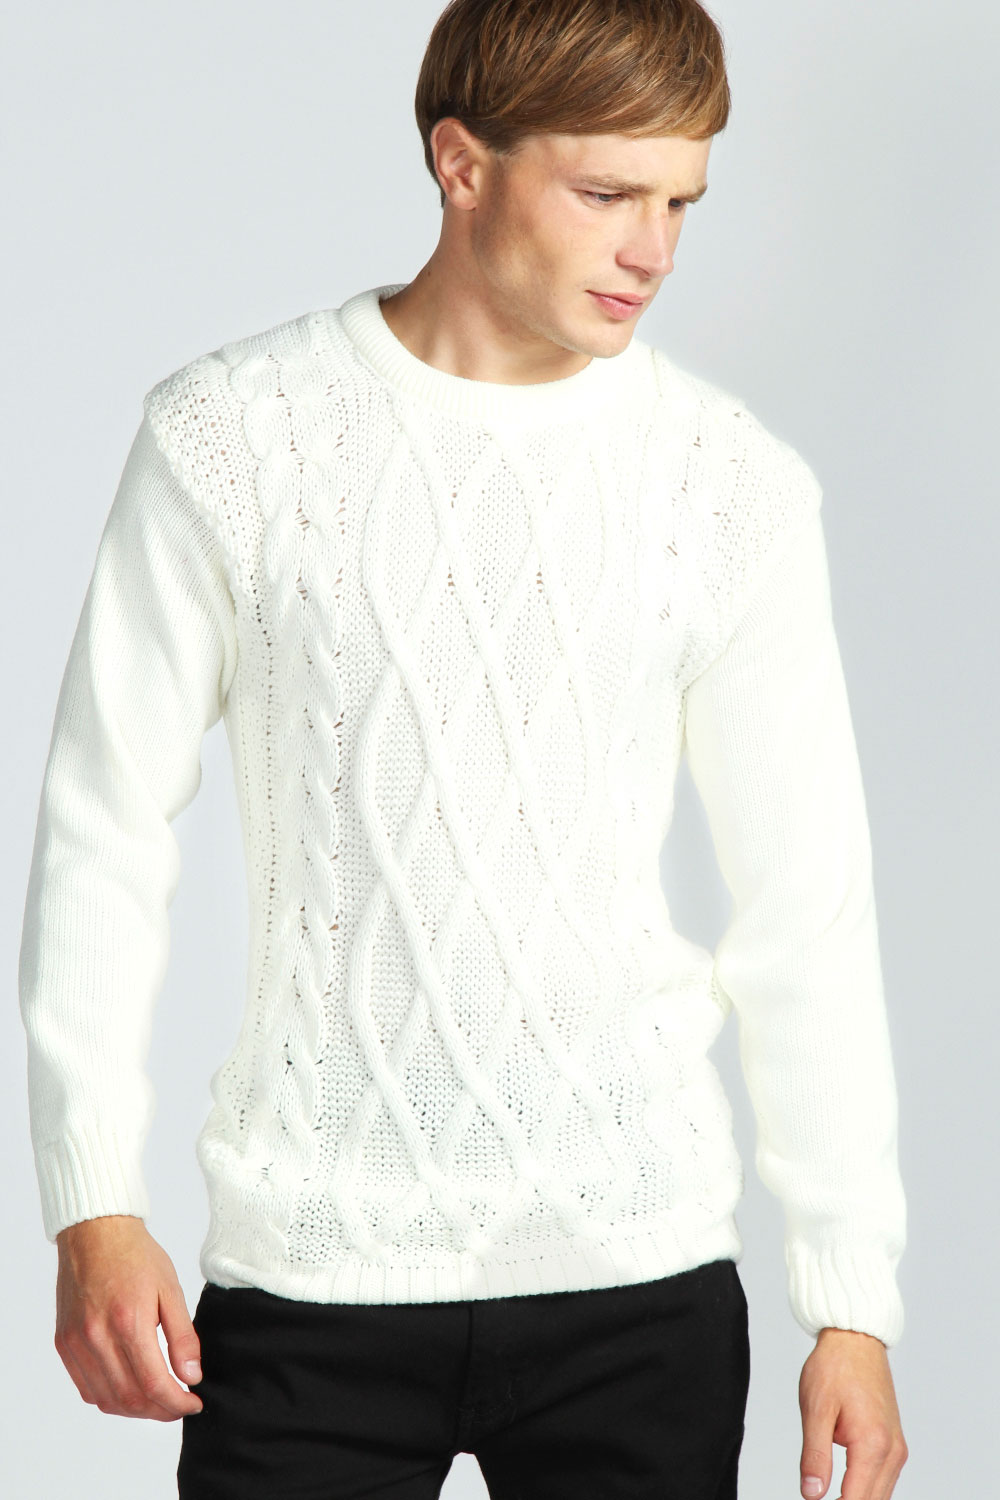 Boohoo-Mens-Cable-Knit-Jumper-In-Cream